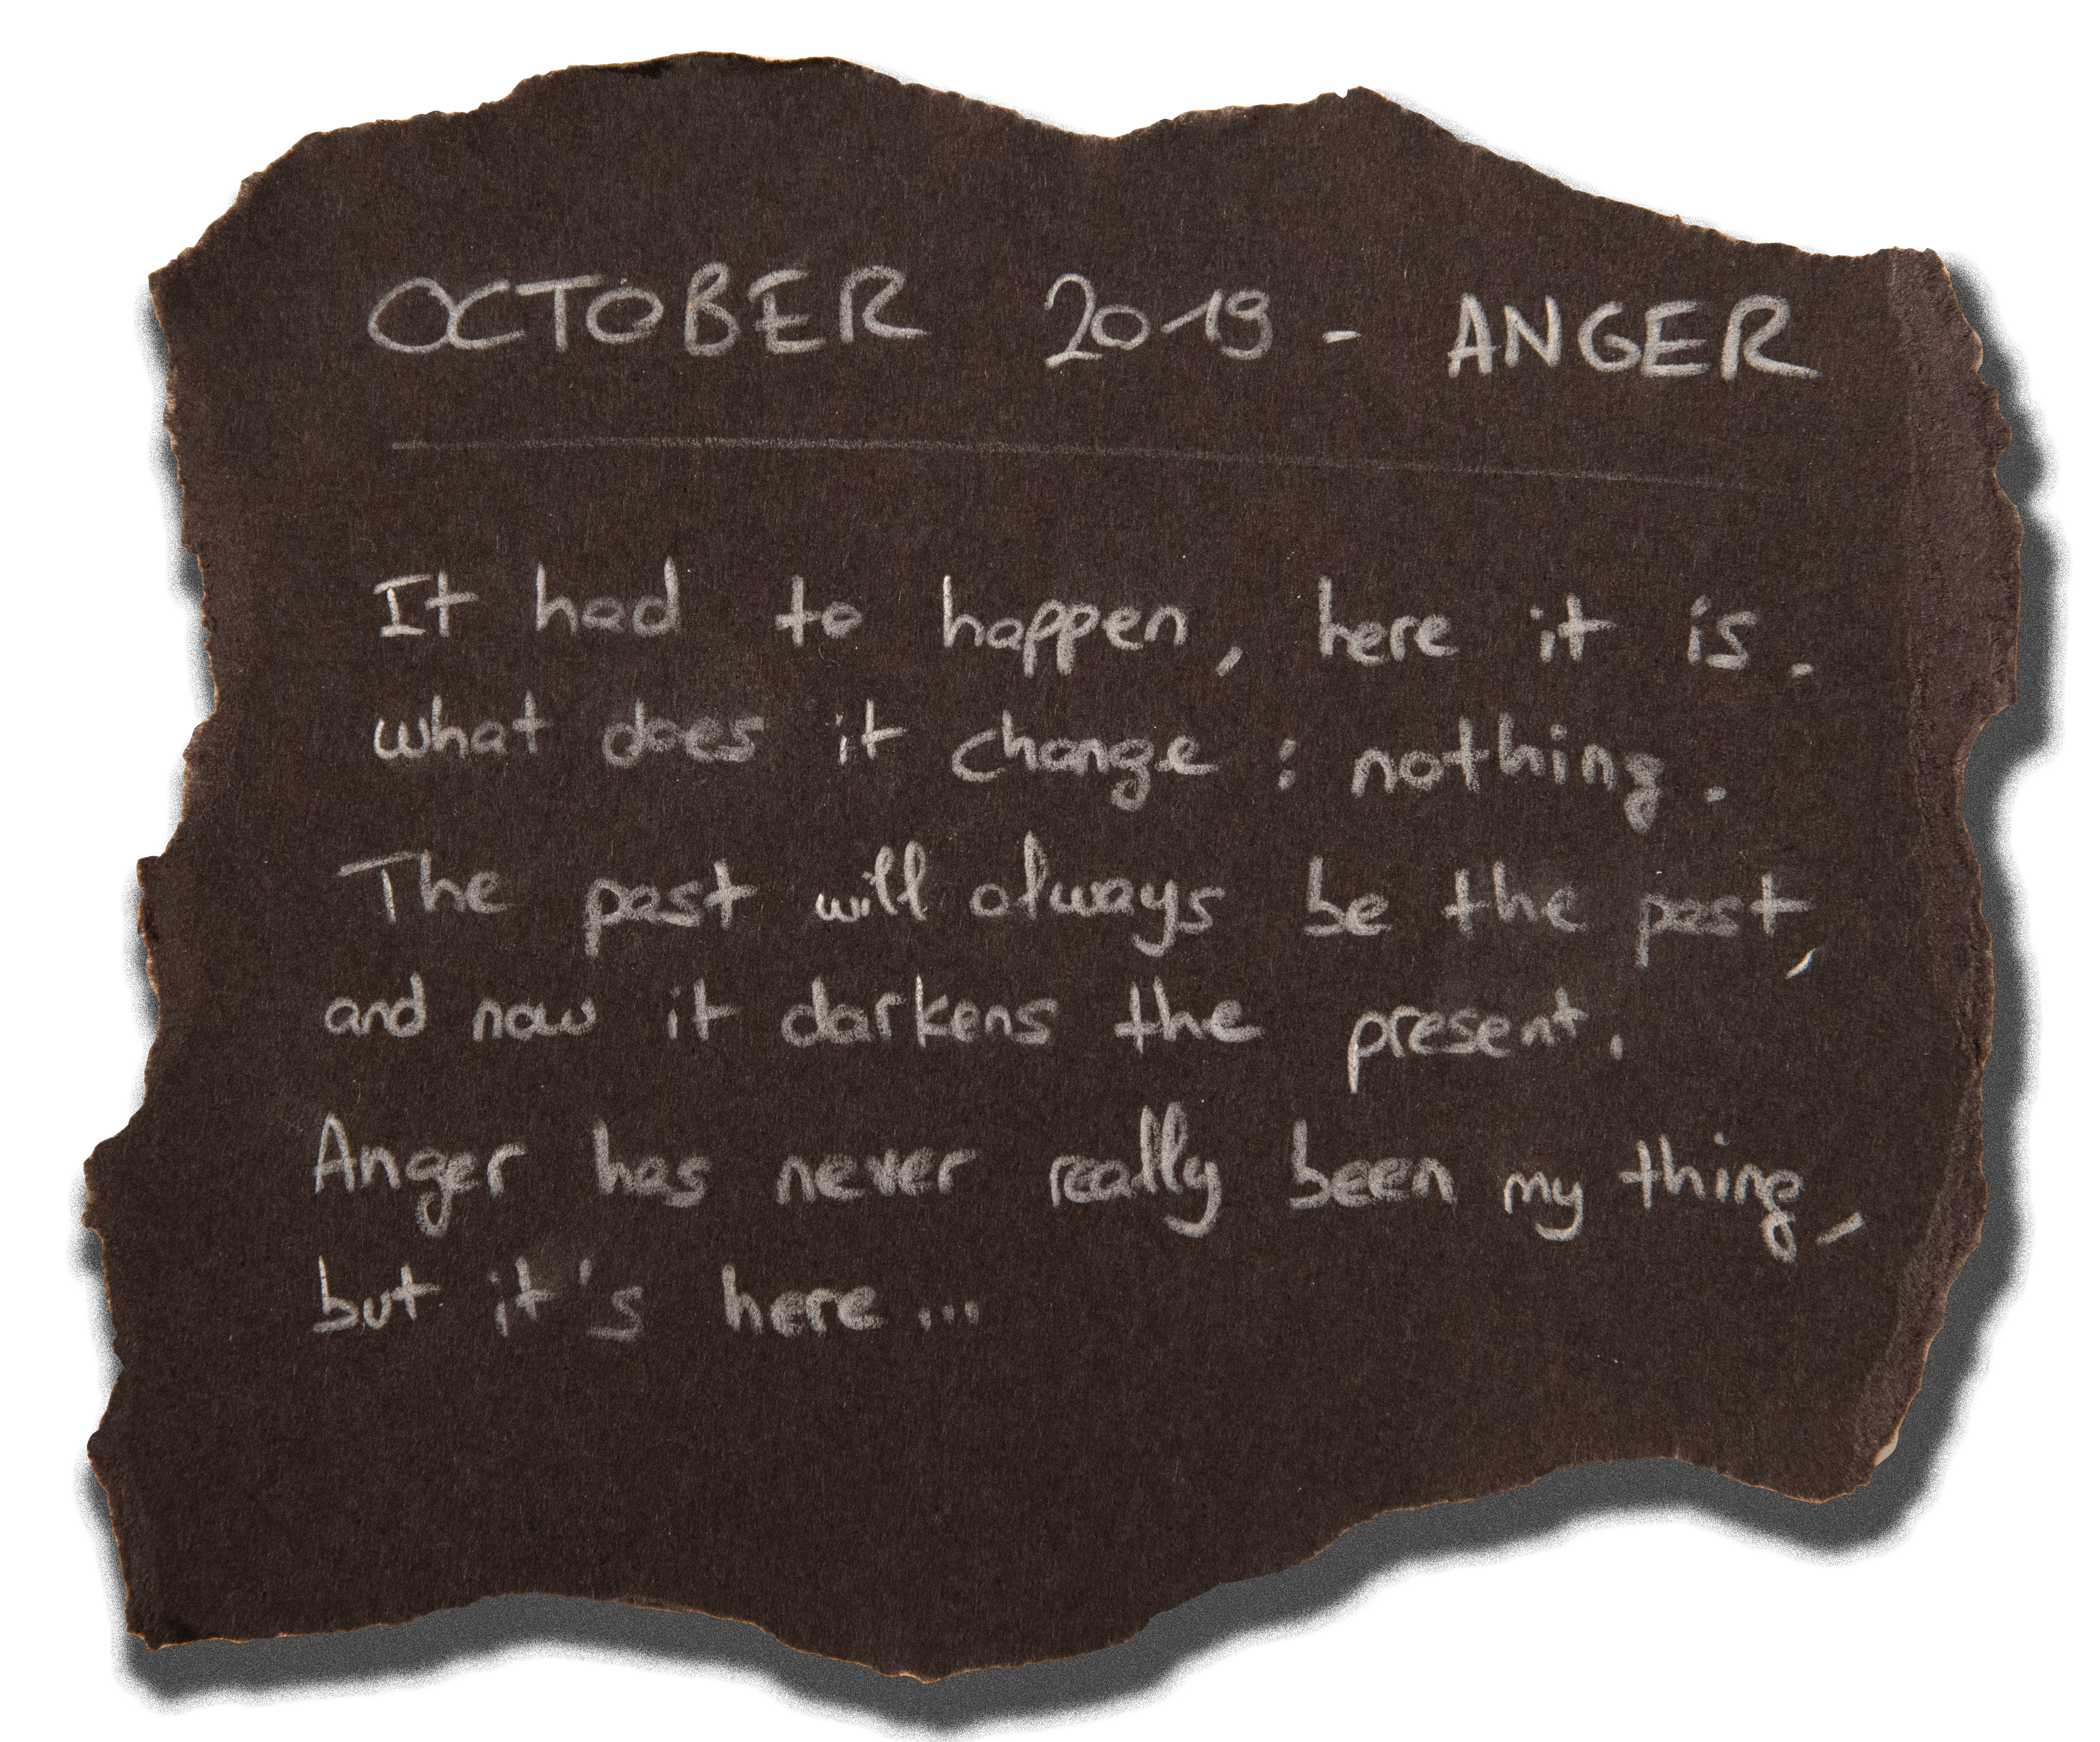 #7 - OCTOBER 2019 - ANGER